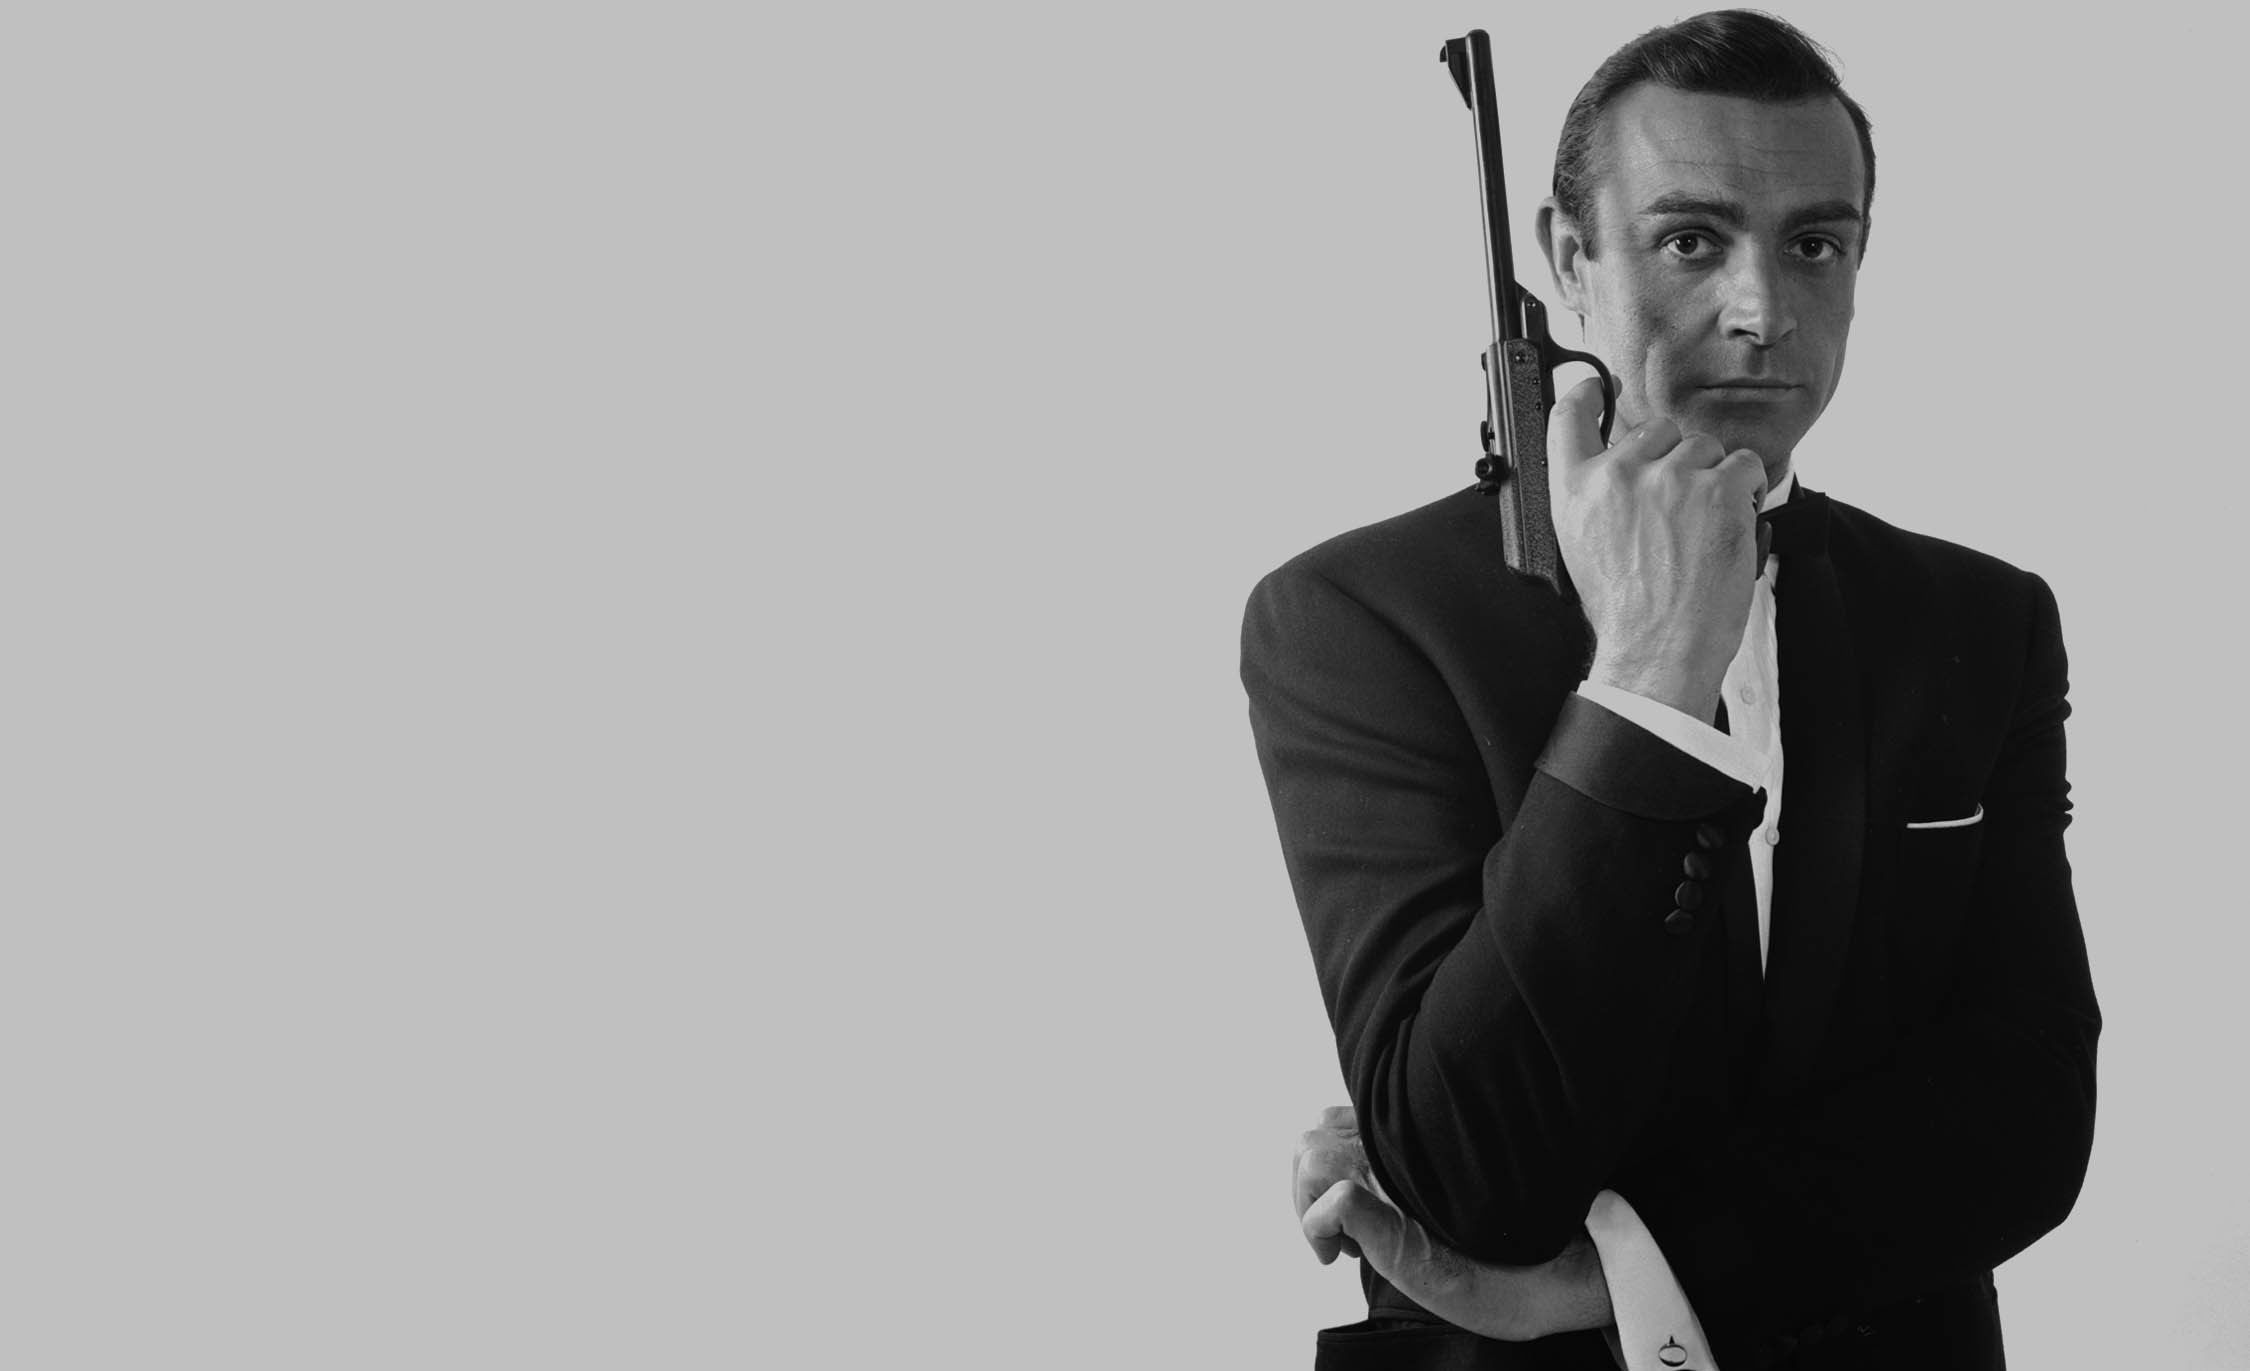 3 HD Sean Connery Wallpapers